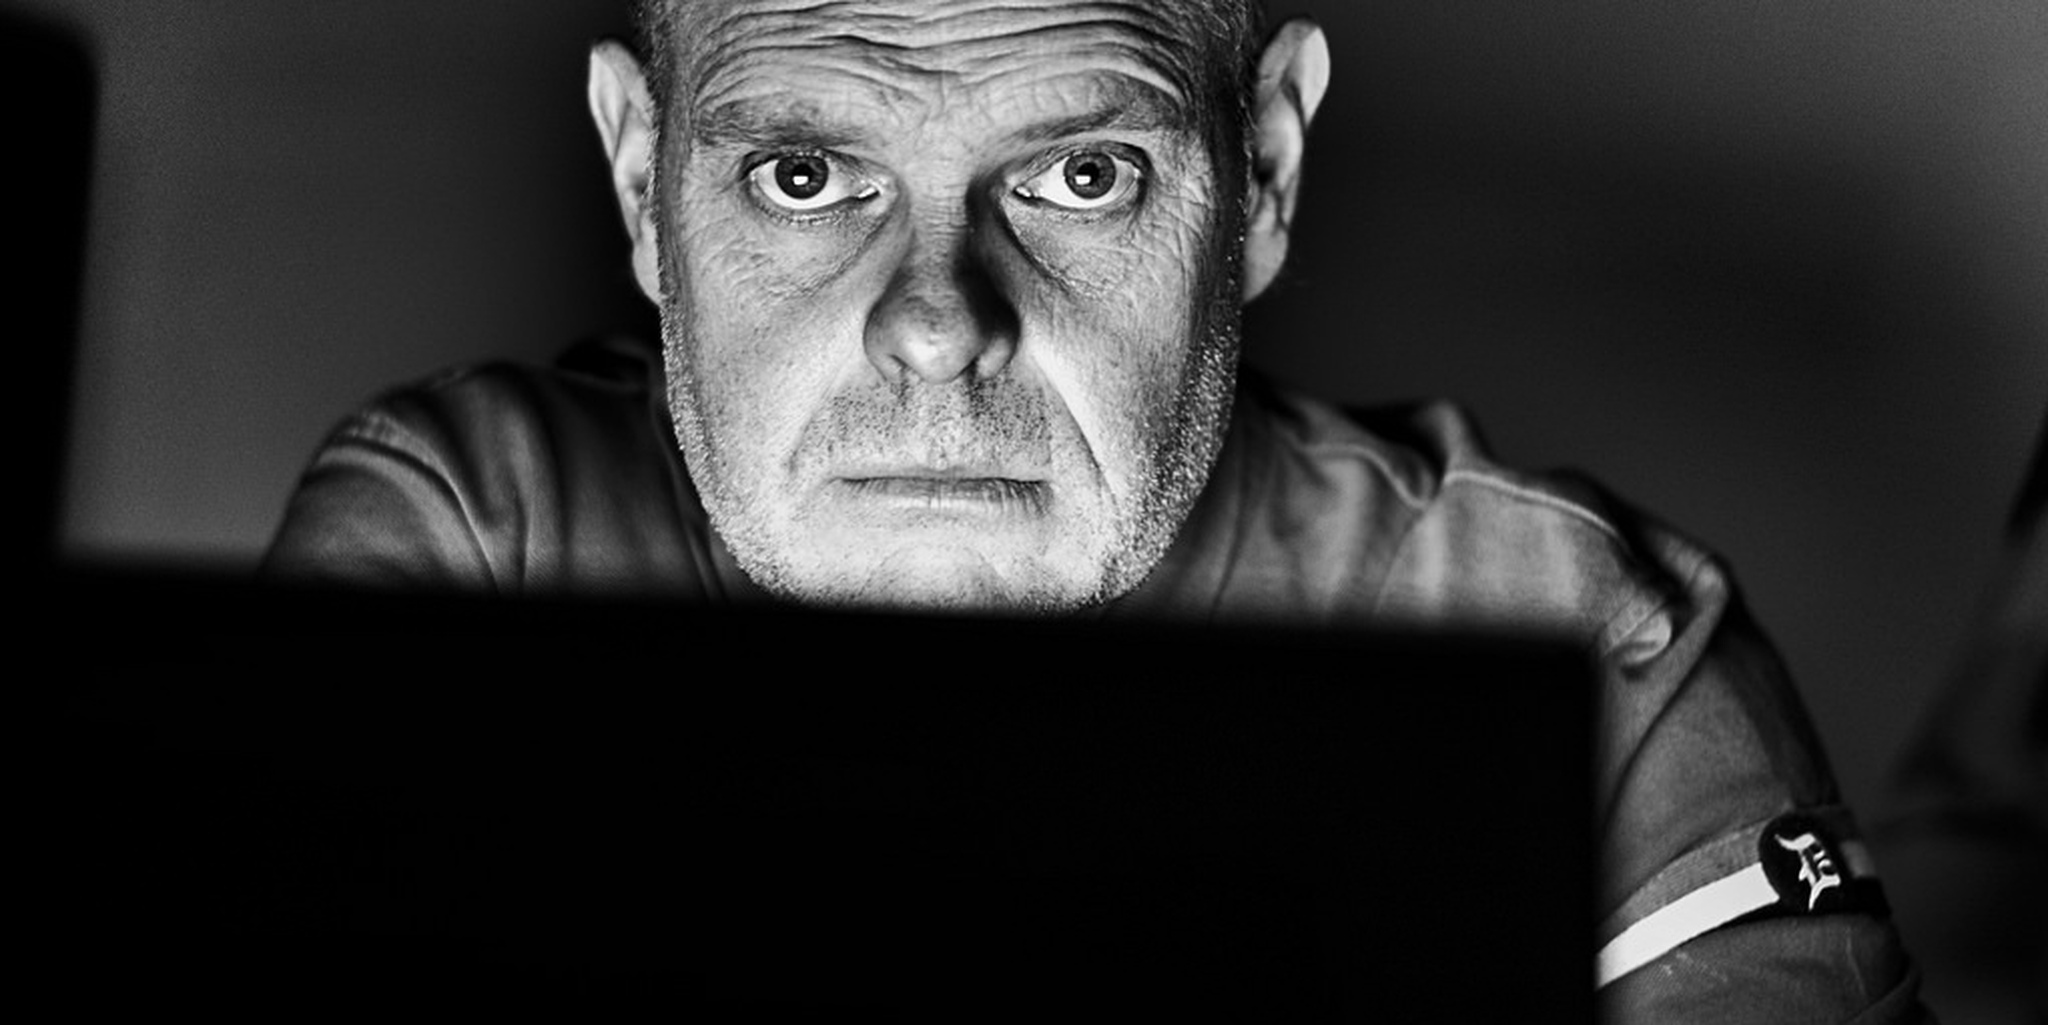 A Man Hunched Over a Laptop